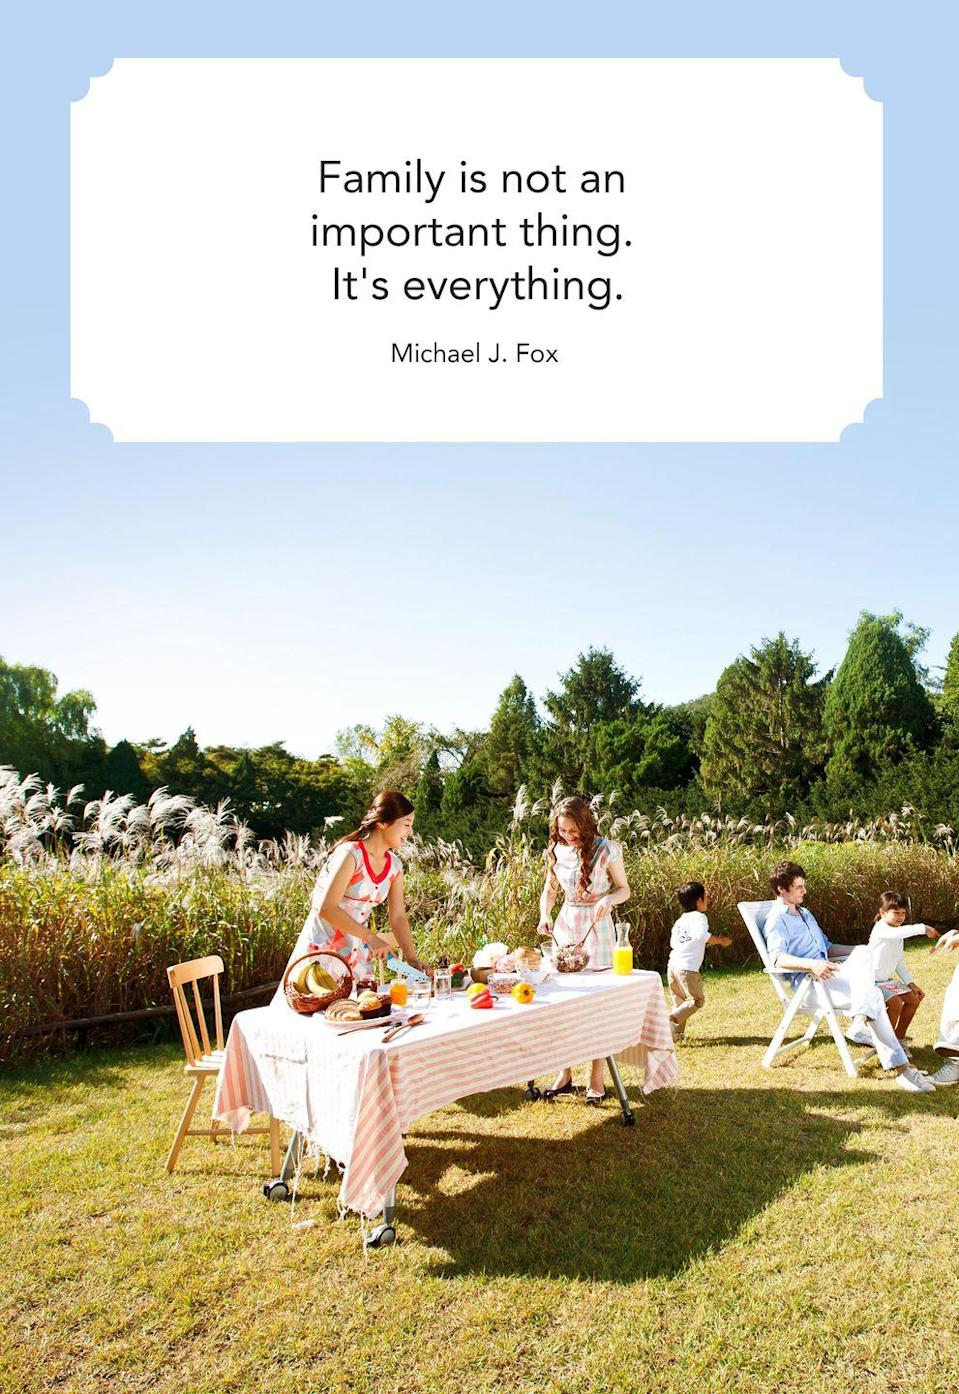 "<p>""Family is not an important thing. It's everything.""</p>"